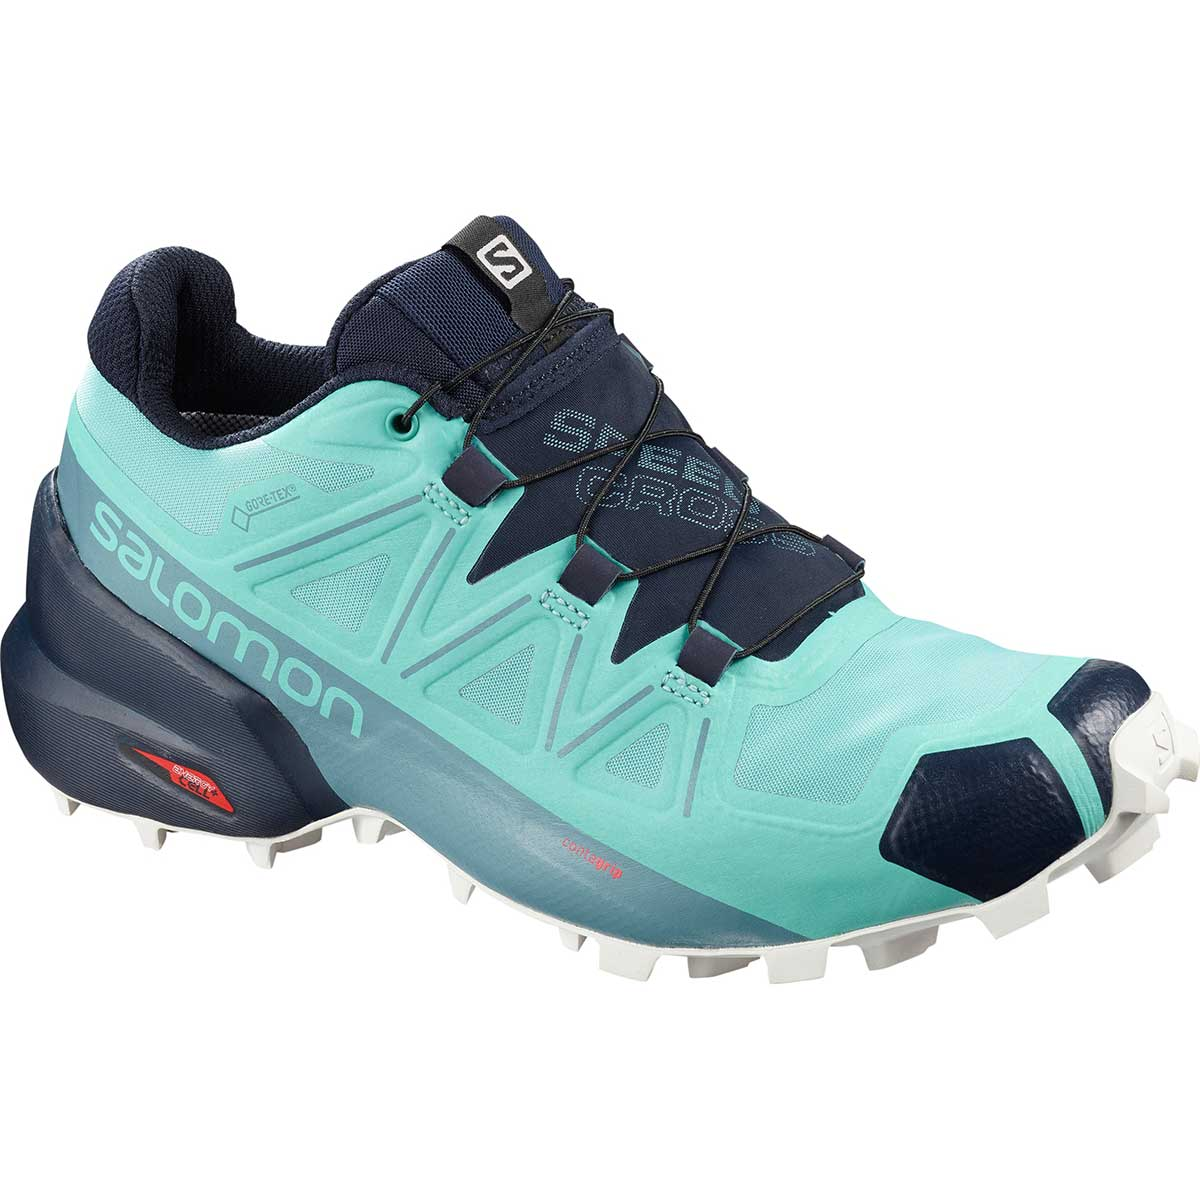 Salomon Speedcross 5 GTX Shoe - Women's